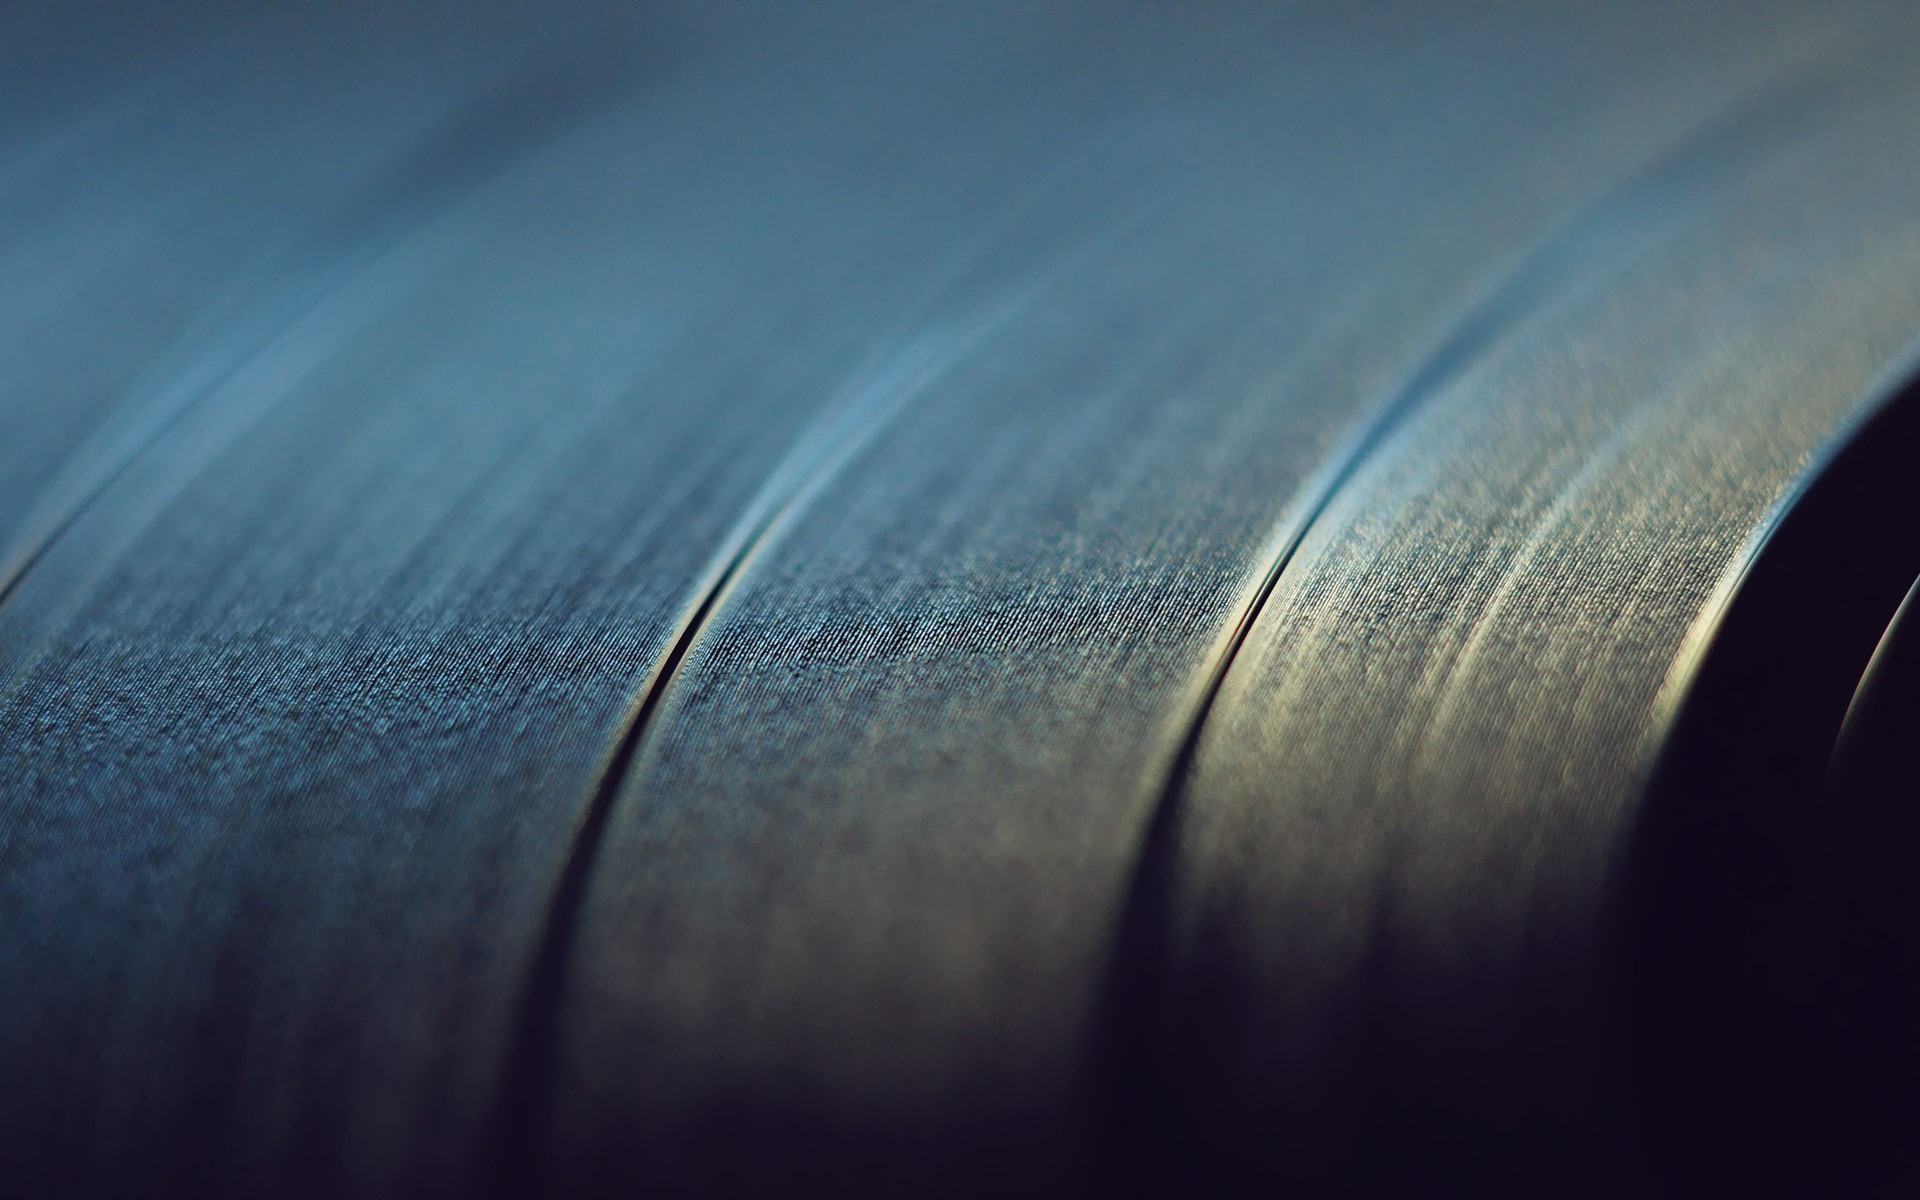 Vinyl close up wallpaper 15657 1920x1200